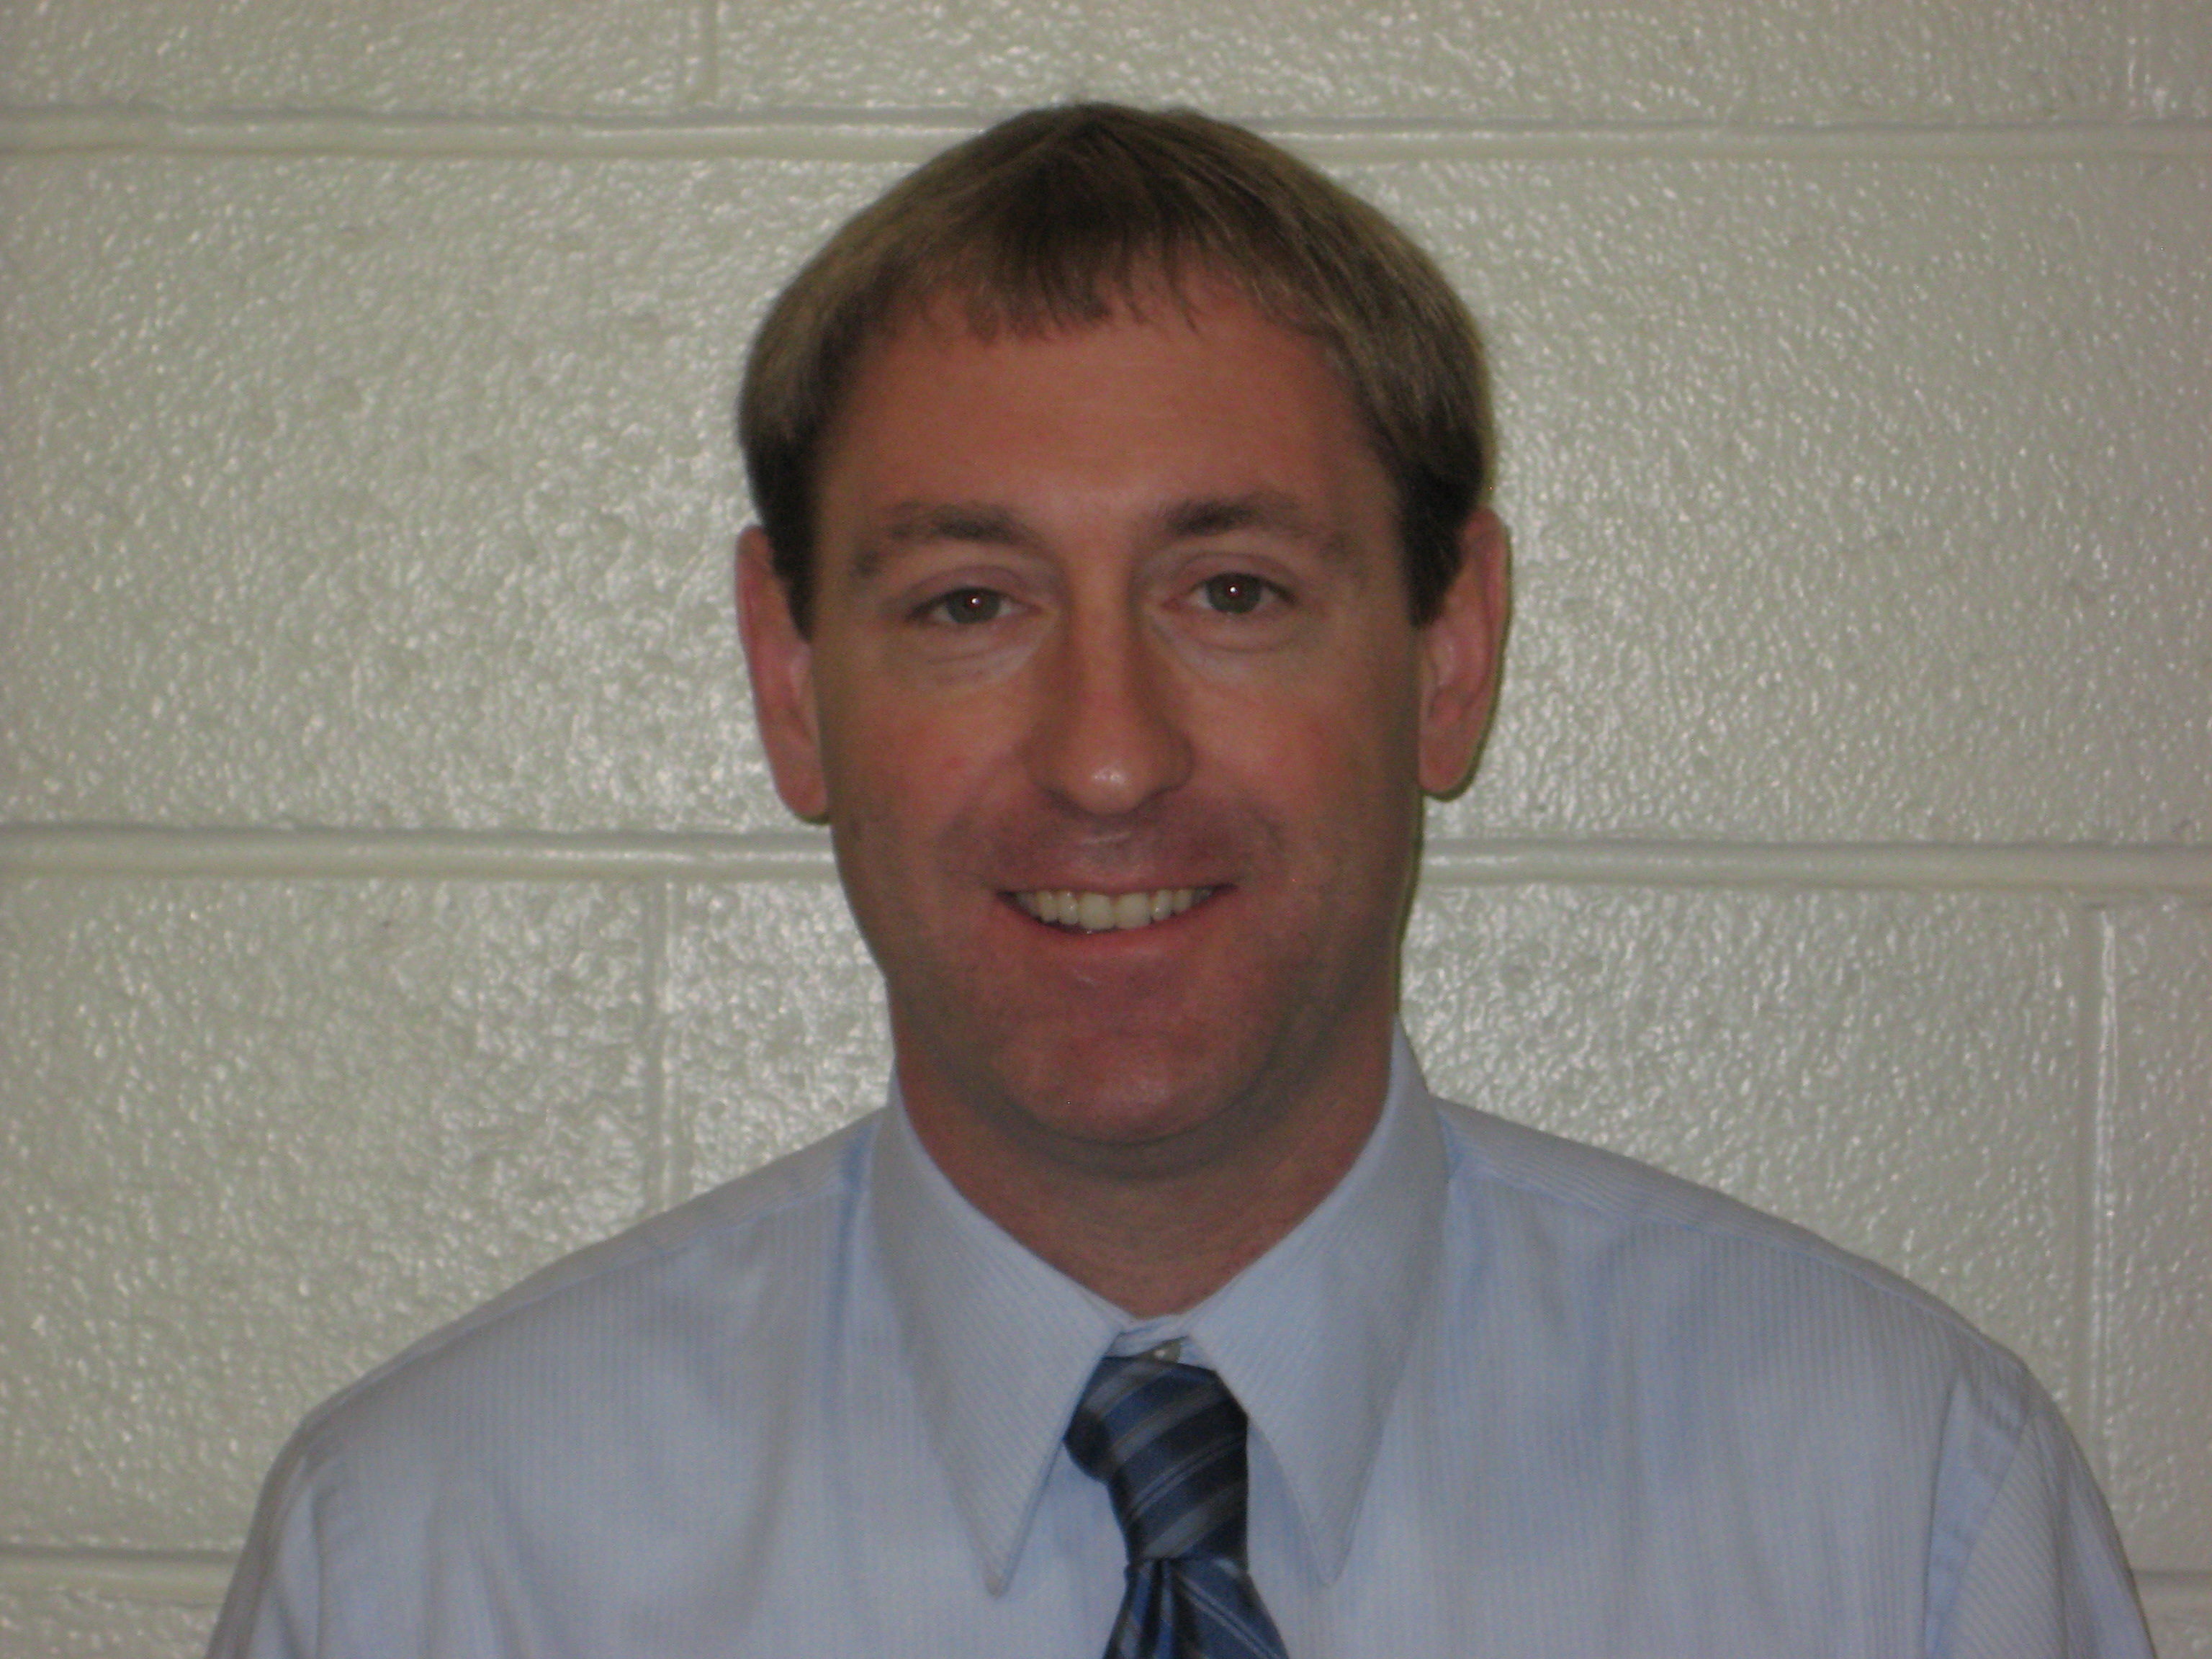 This is an image of Cresaptown Elementary School principal, Scott Llewellyn